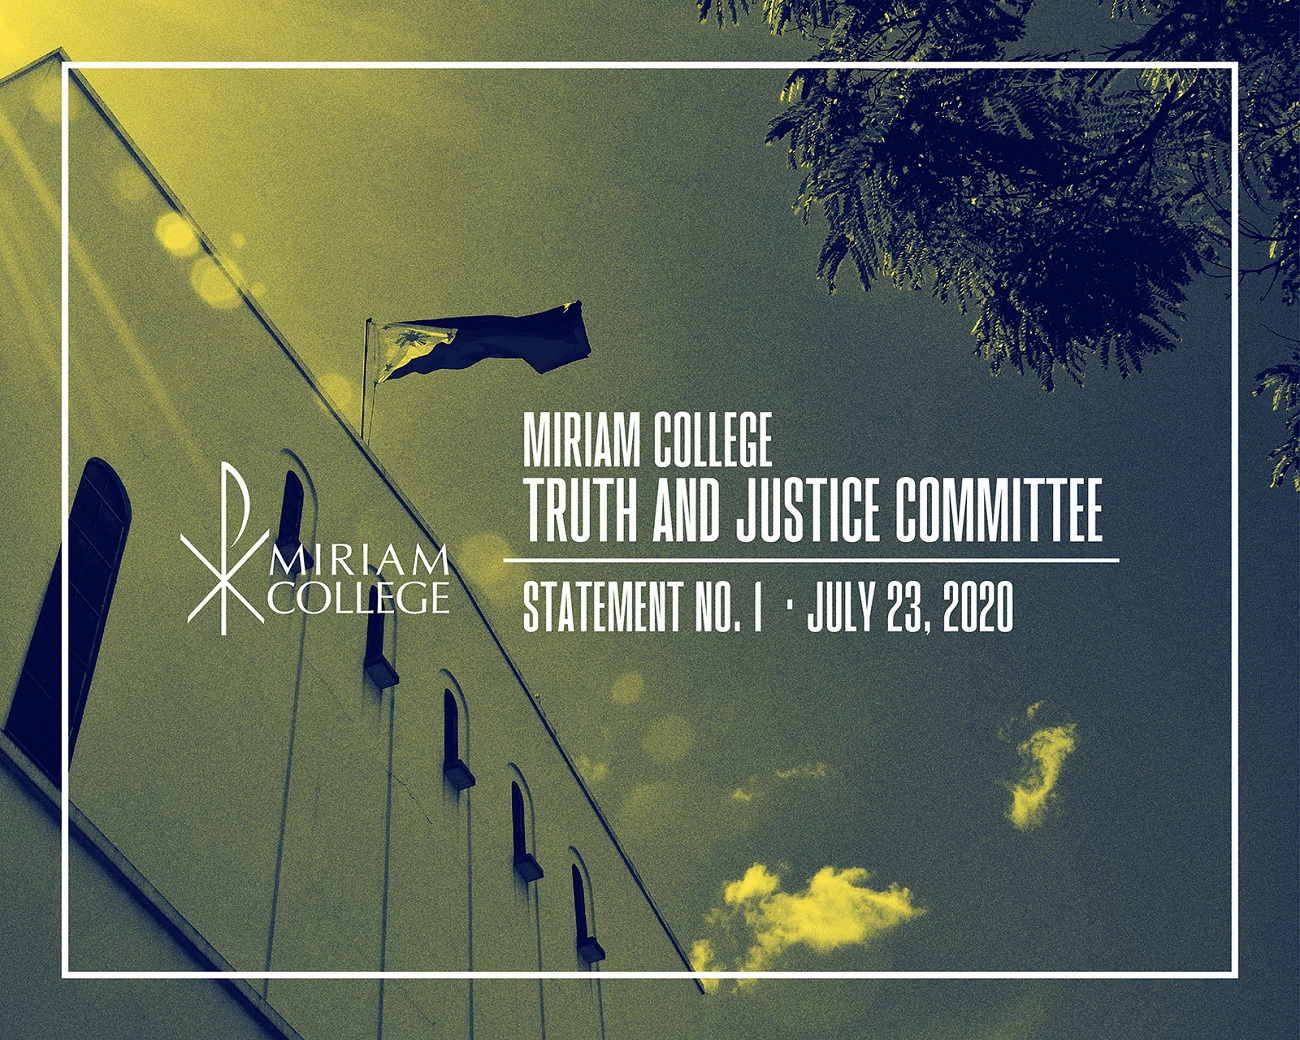 MIRIAM COLLEGE TRUTH AND JUSTICE COMMITTEE | Statement No. 1